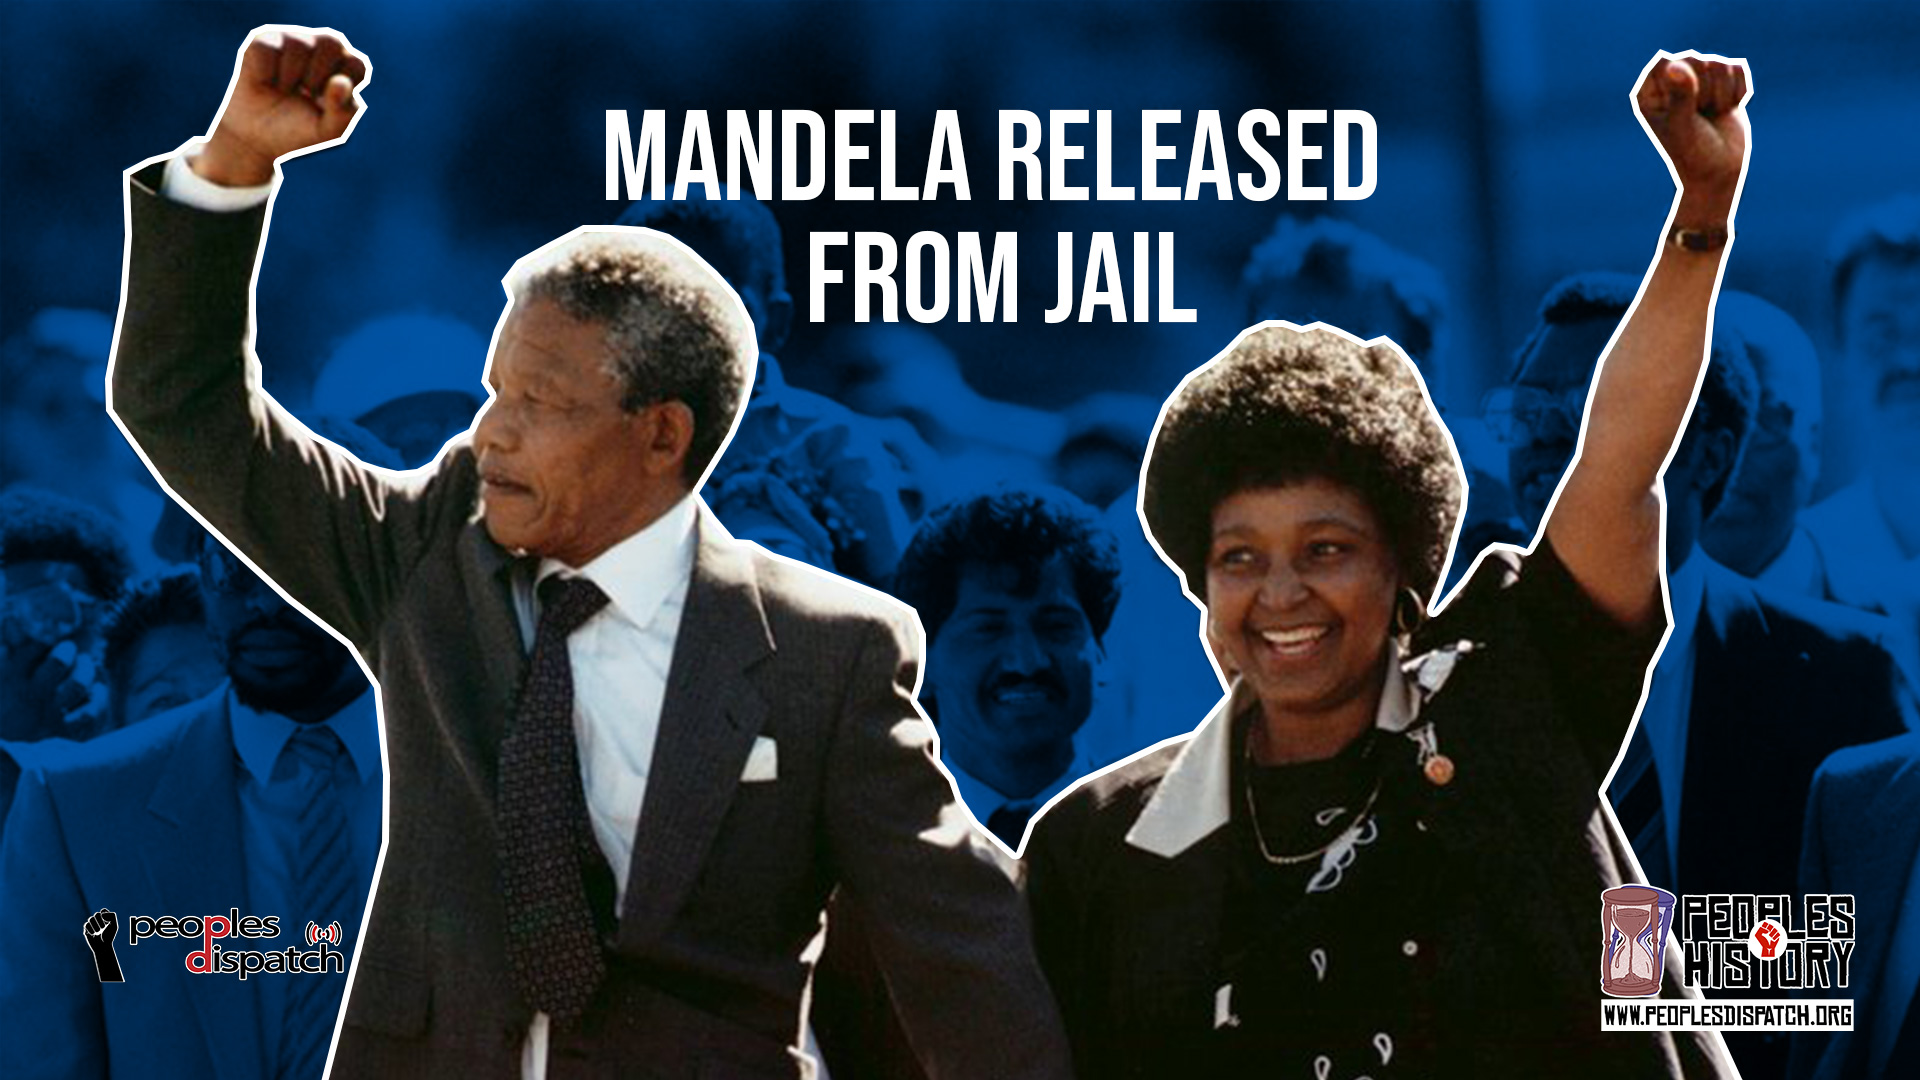 Mandela released from jail_